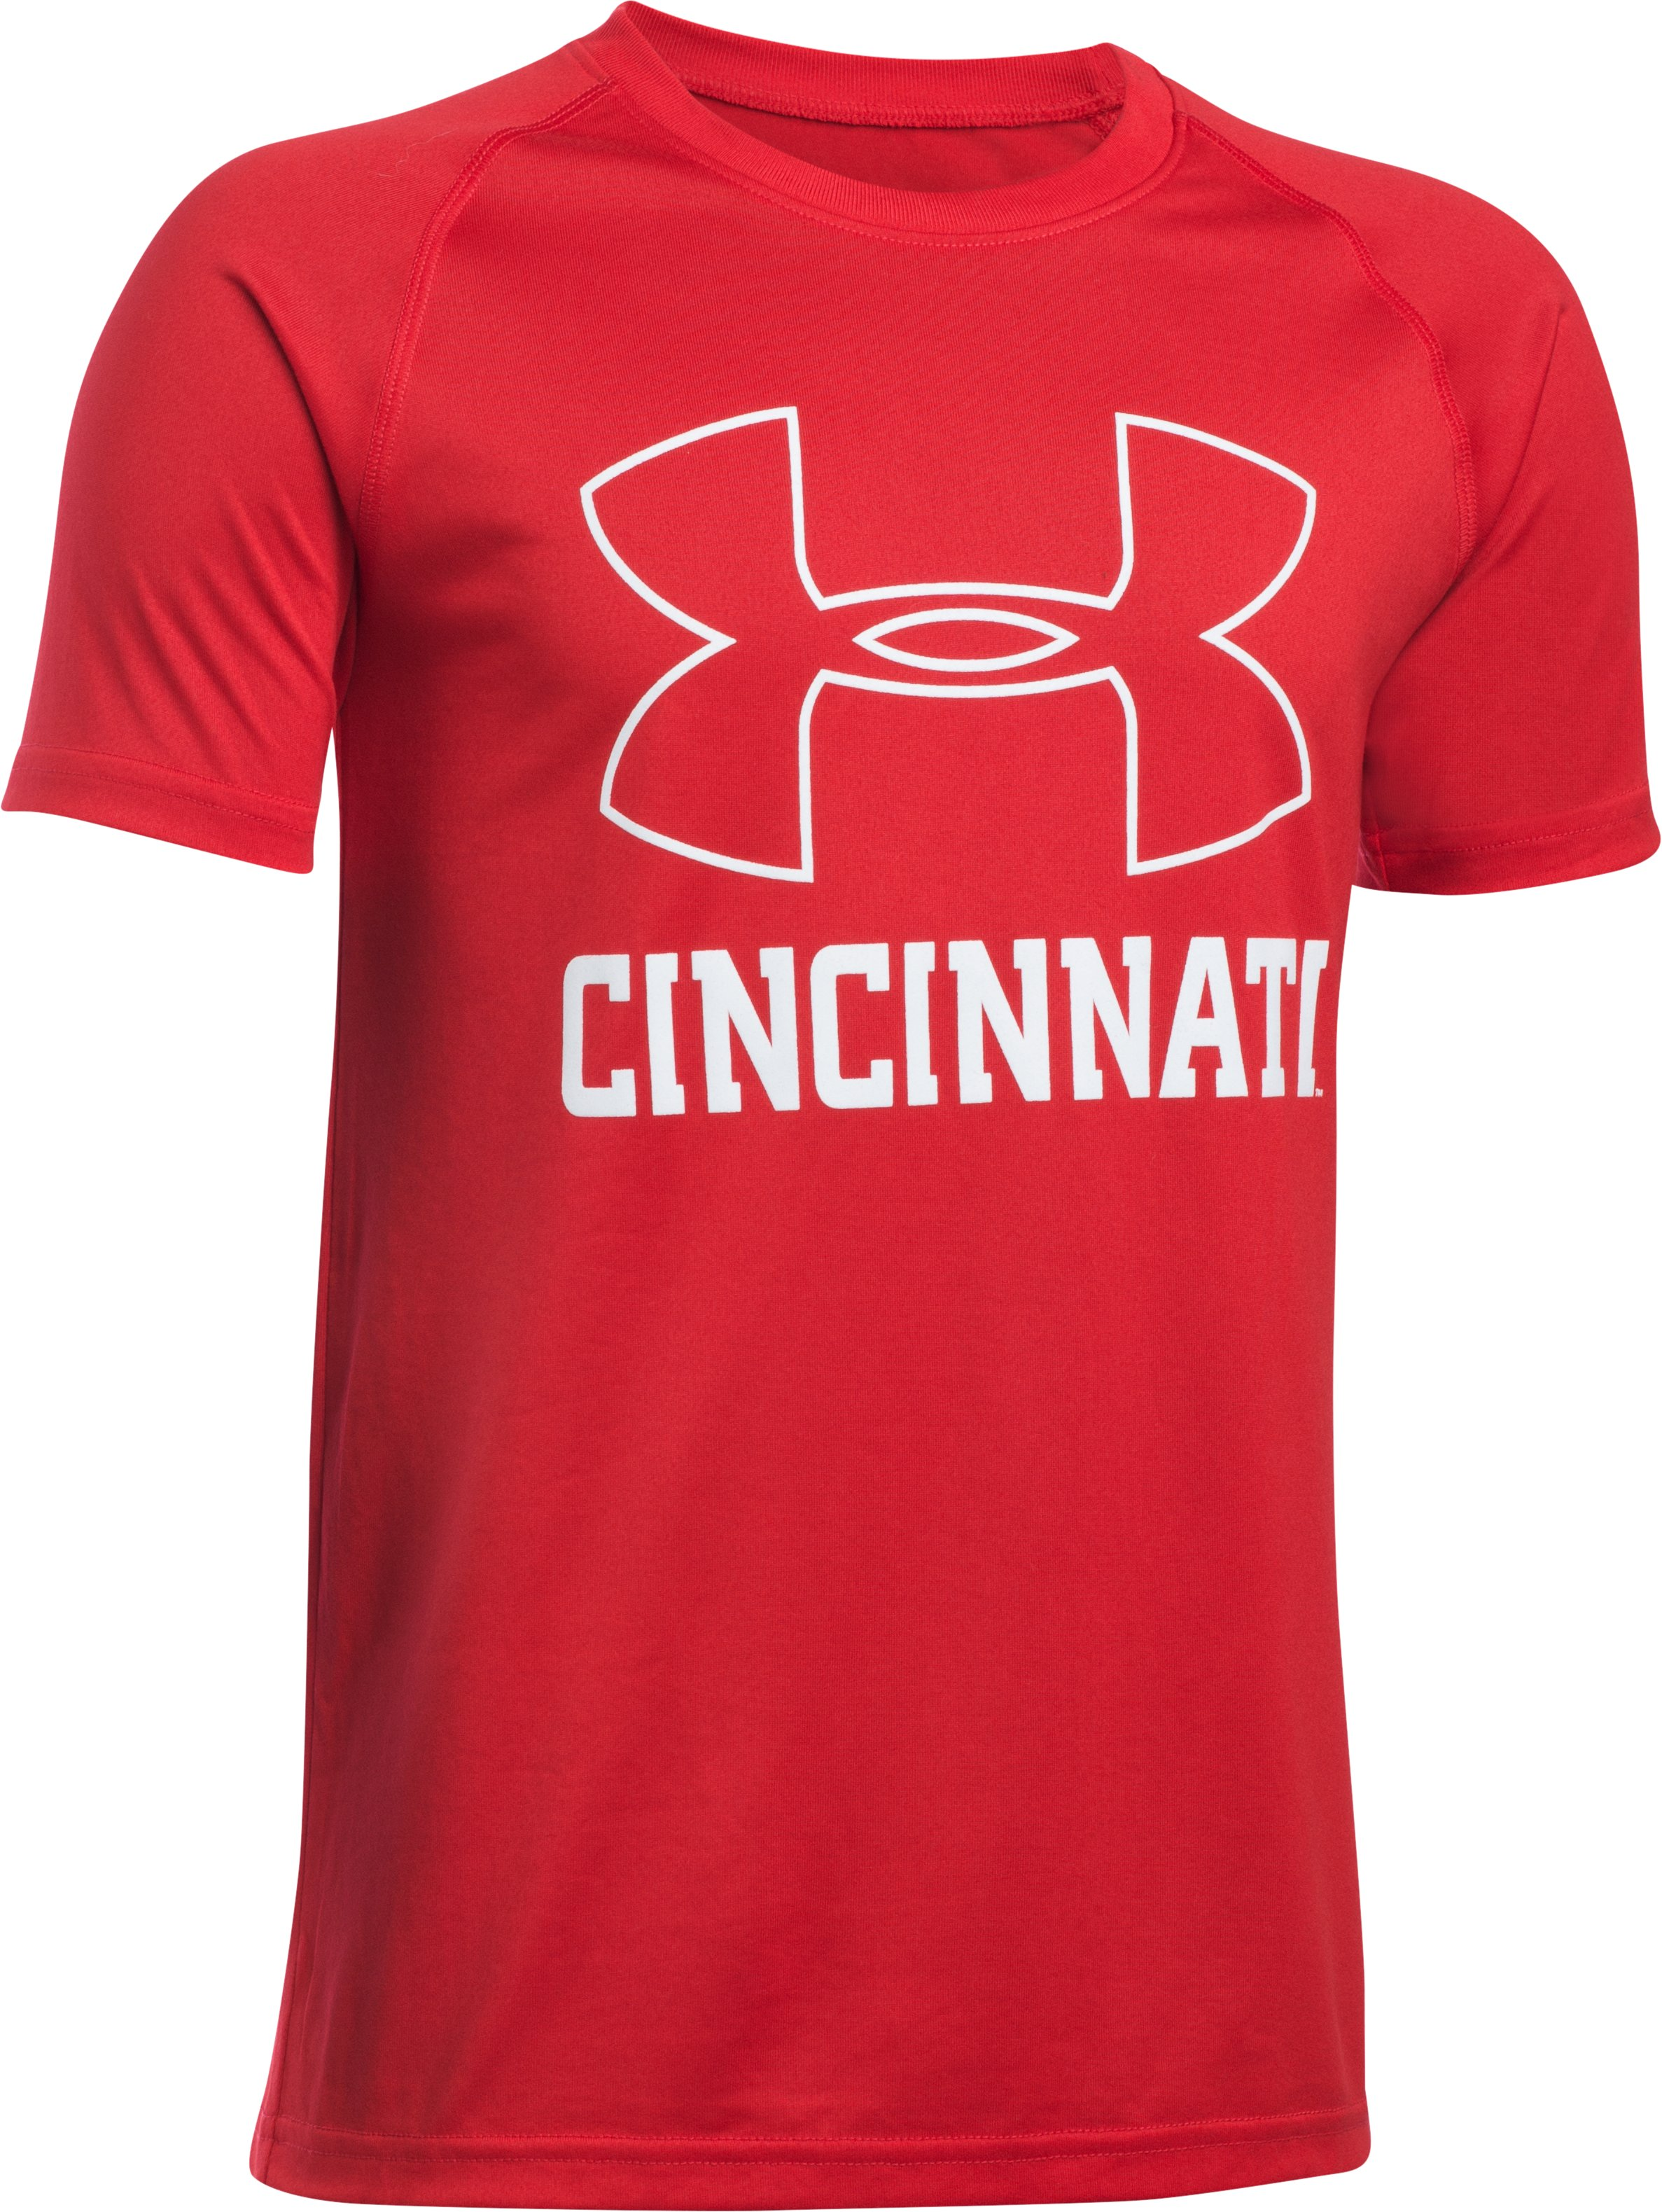 Boys' Cincinnati Charged Cotton® T-Shirt, Red, undefined